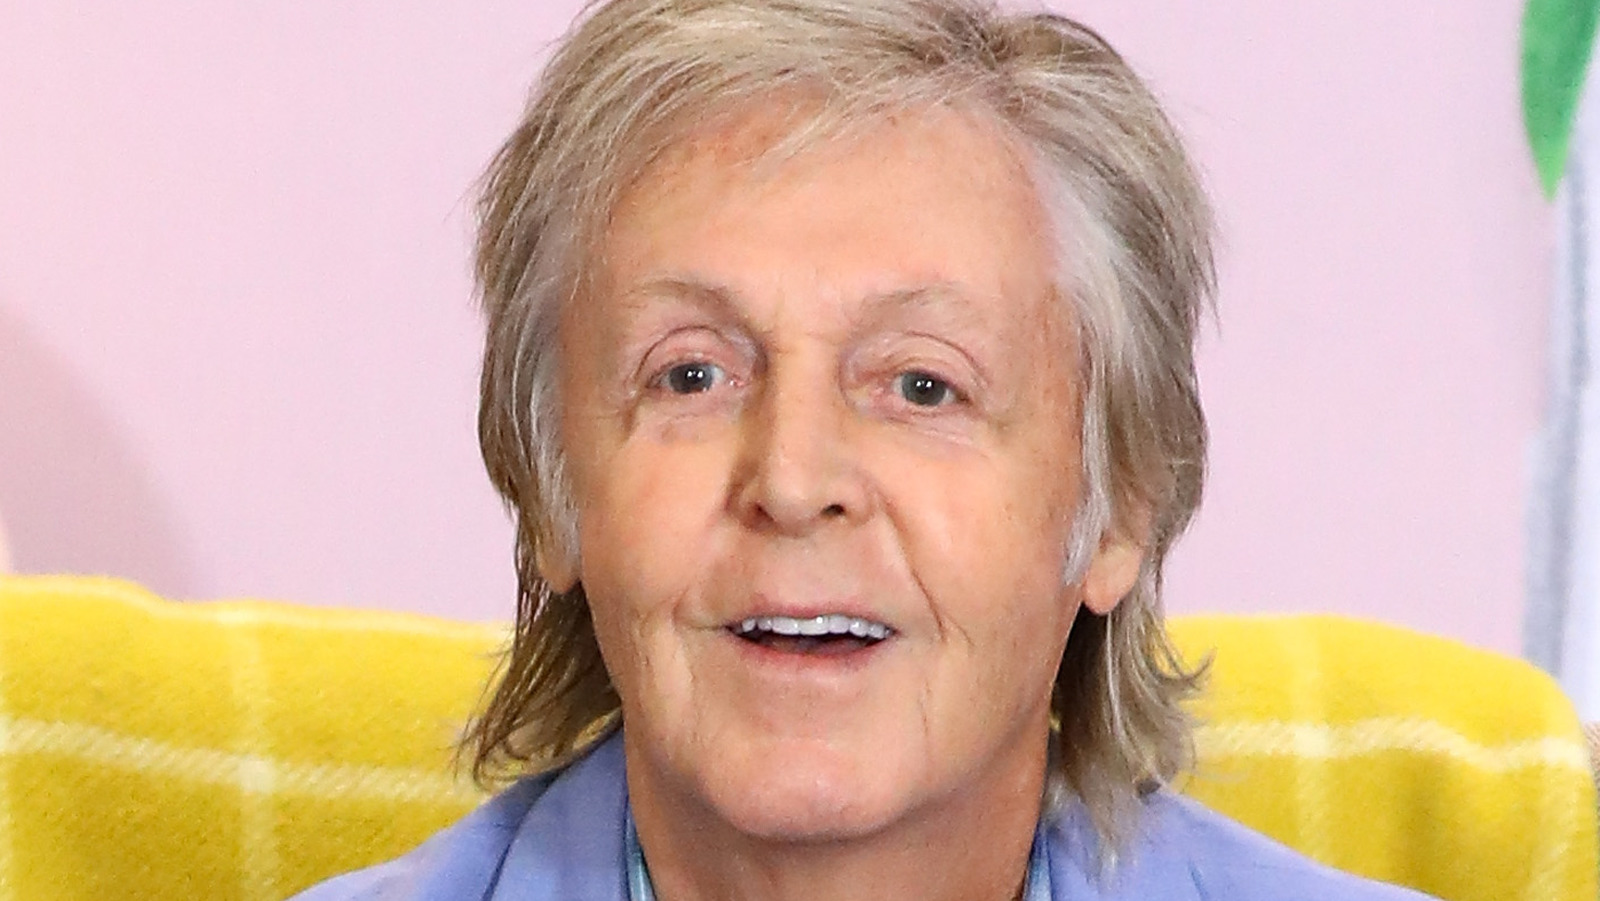 Paul McCartney just revealed an insecurity that might surprise you